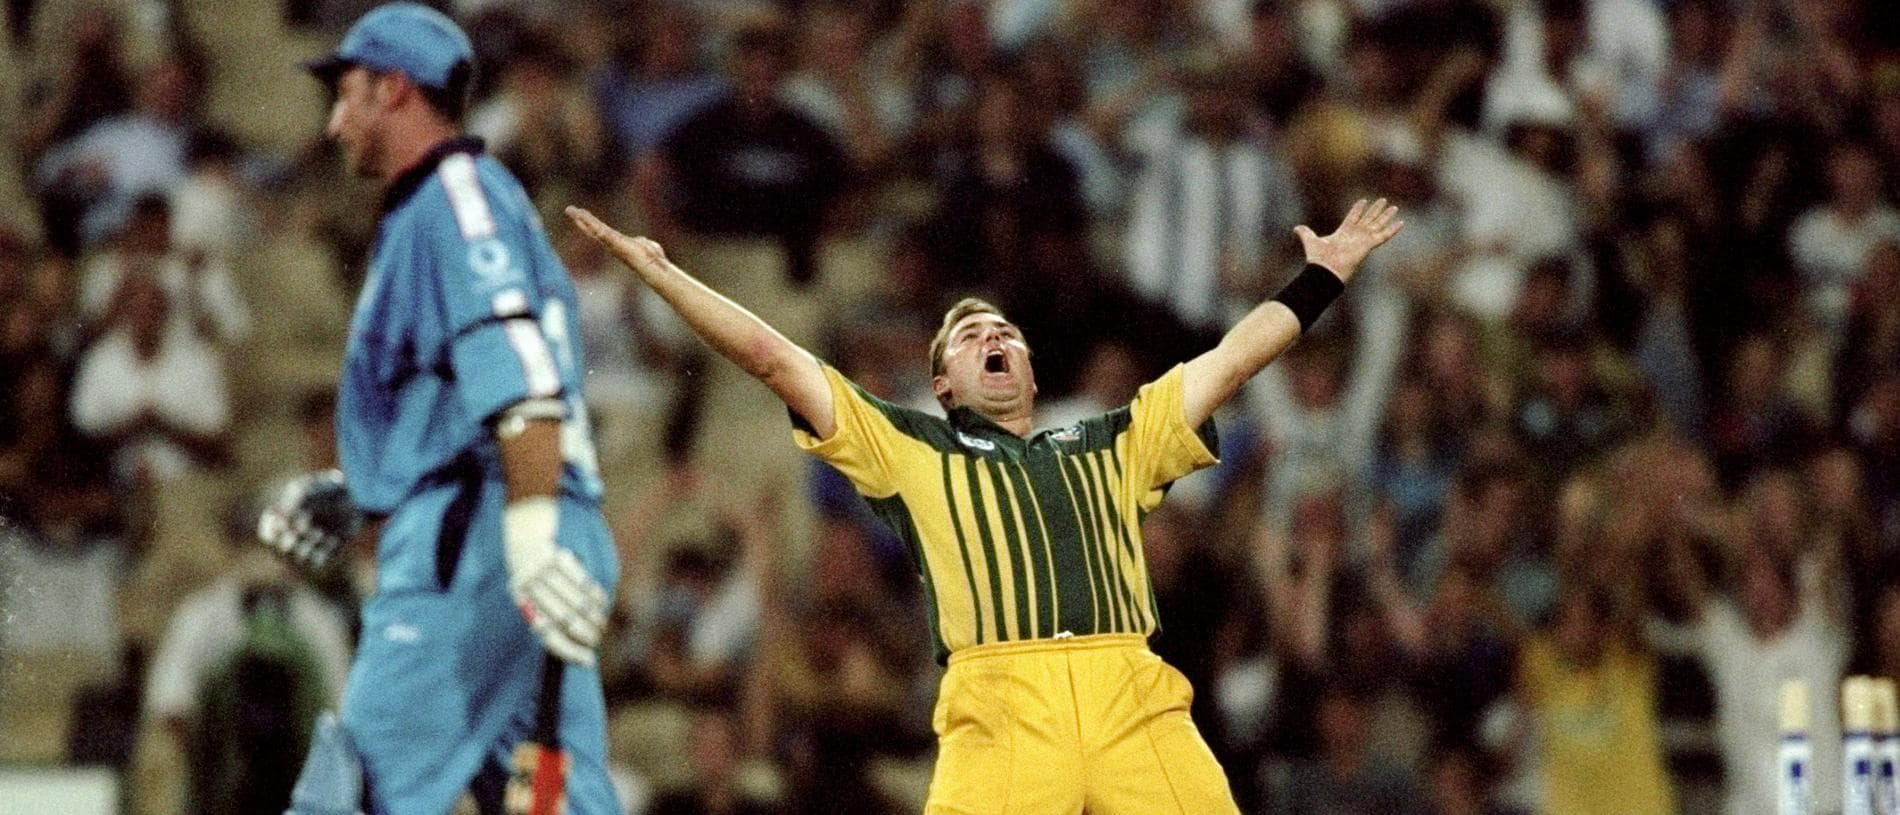 10 Feb 1999:  Shane Warne of Australia celebrates the wicket of Nasser Hussain of England in the first final of the Carlton and United One Day Series at the Sydney Cricket Ground in Australia. Australia won by 10 runs. \ Mandatory Credit: Clive Mason /Allsport